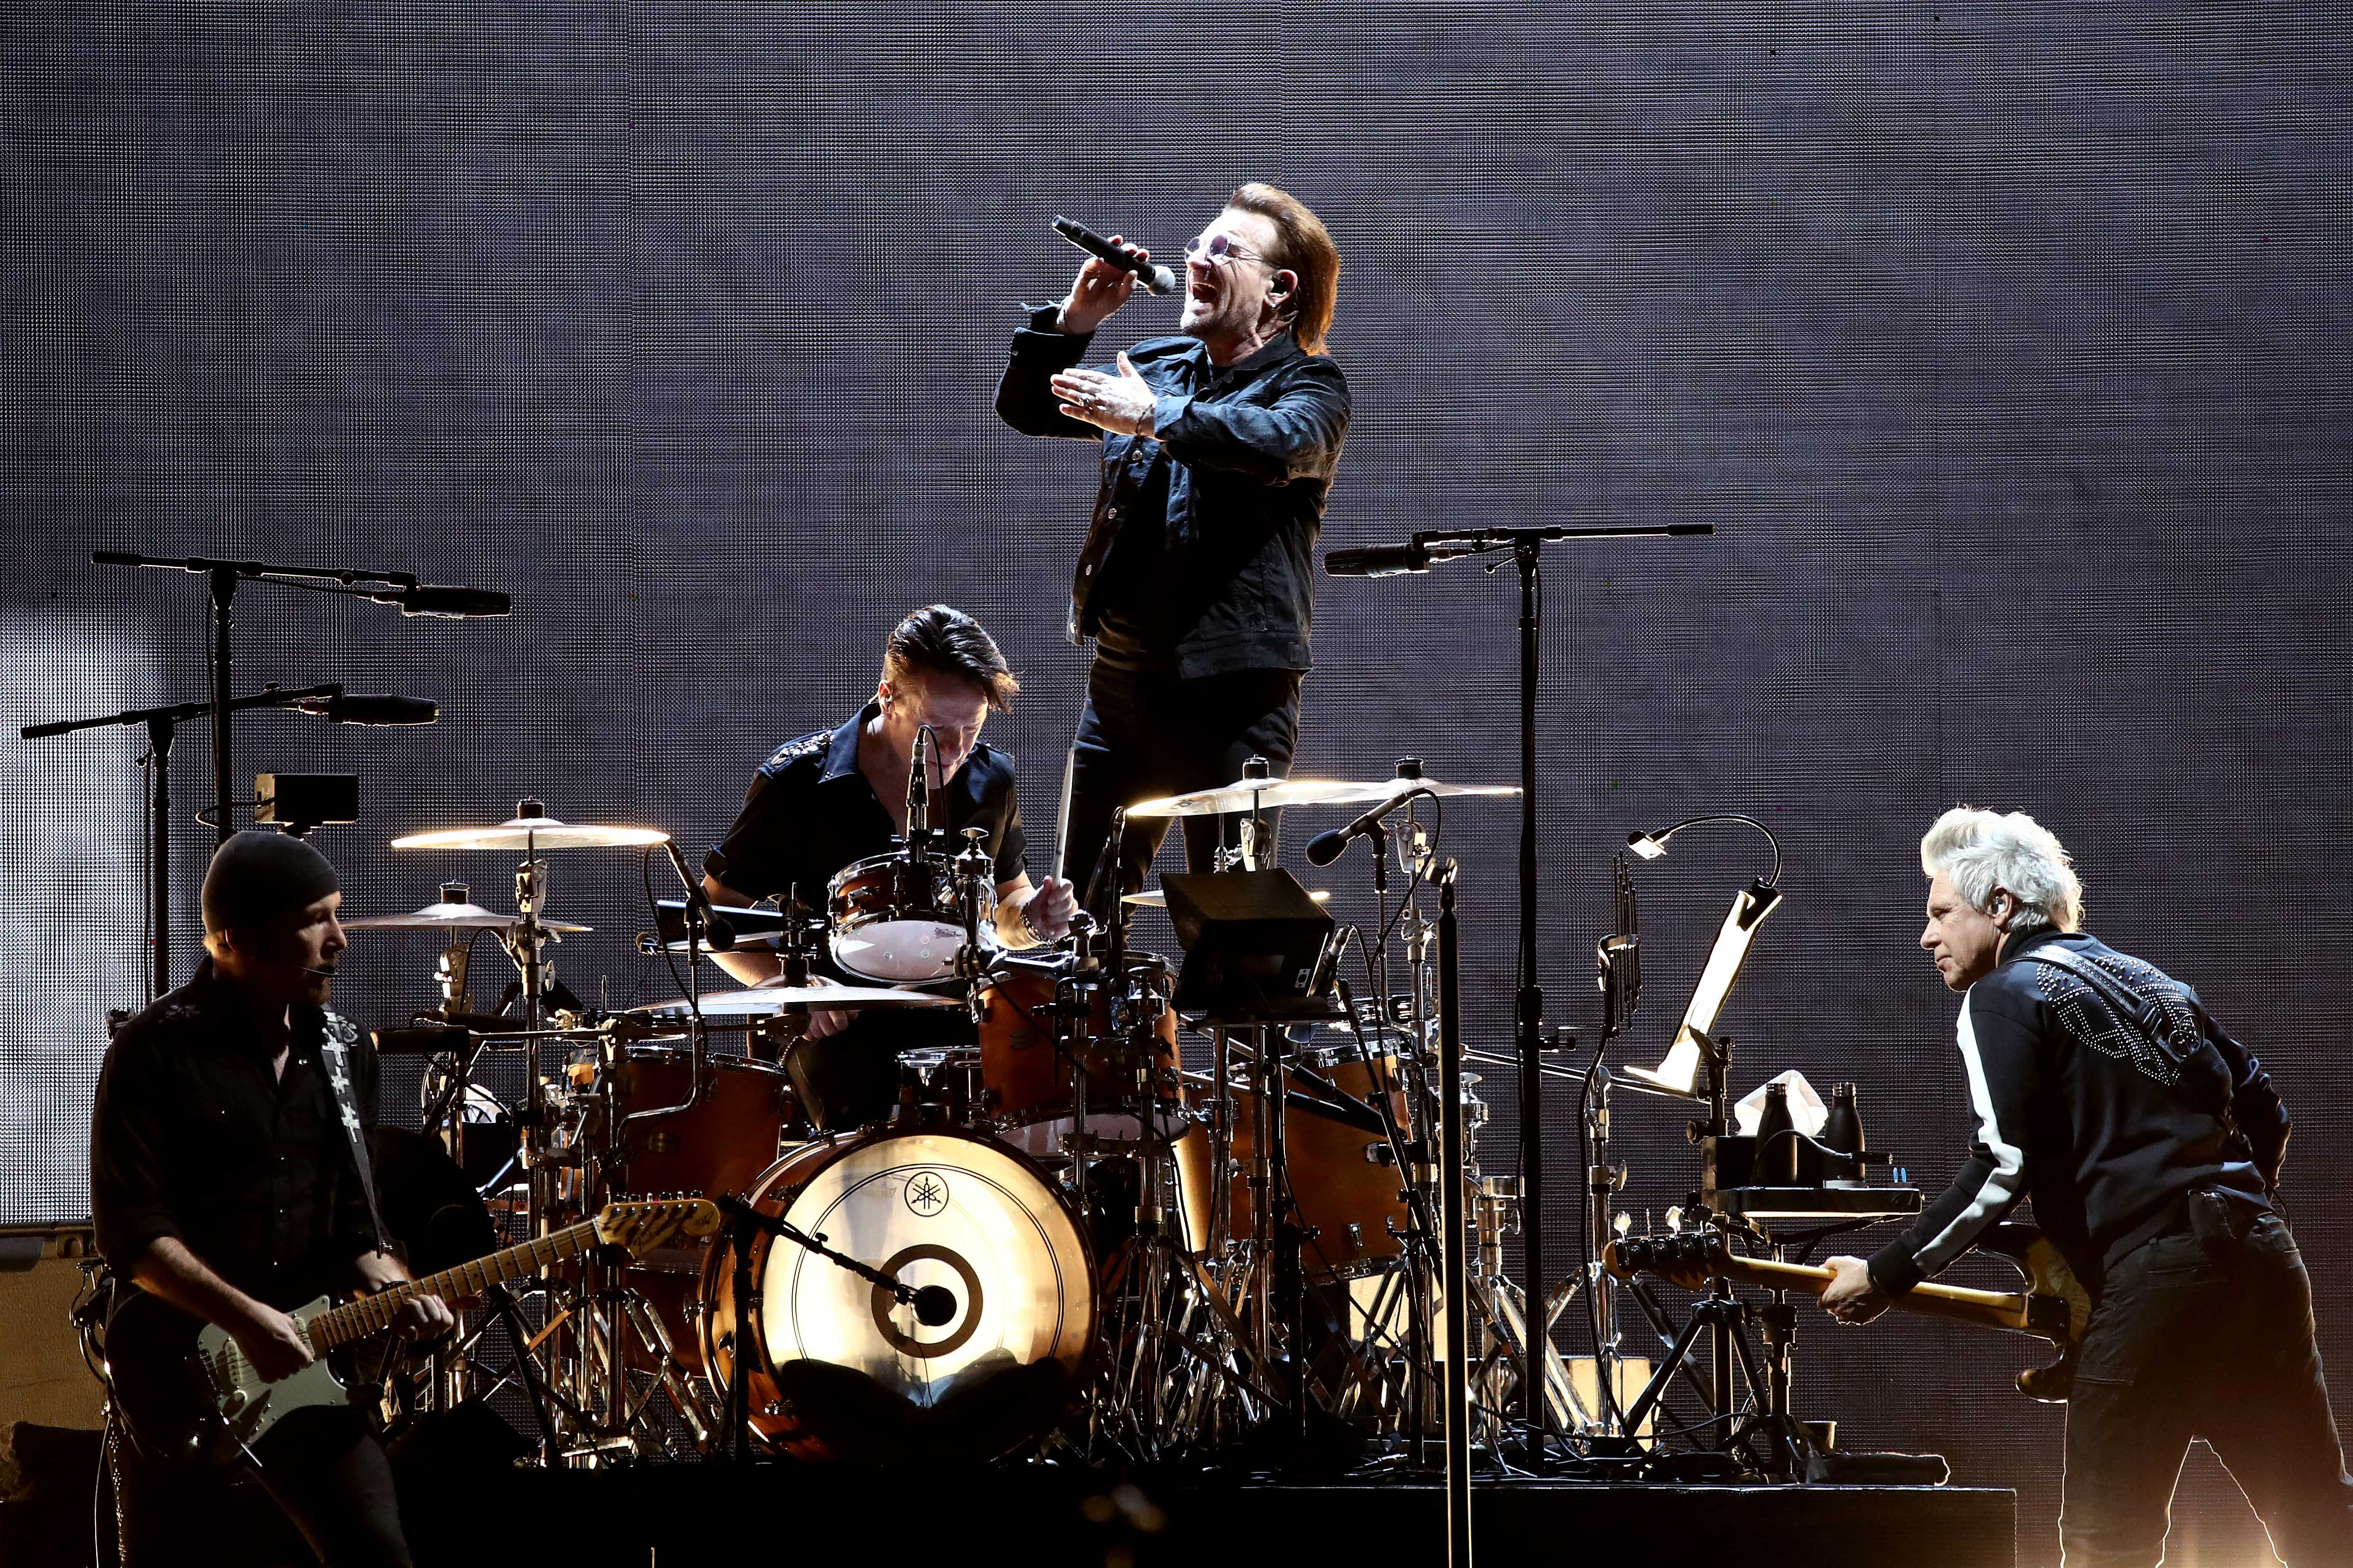 Drummer Larry Mullen, Jr., who was only 14 at the time, posted a note on a bulletin board at his high school saying he was looking for musicians to start a band. Six people responded to the note, and among them were Paul Hewson (Bono), David Evans (The Edge) and Adam Clayton. Who would have thought that a simple note would evolve into one of the biggest bands in history?